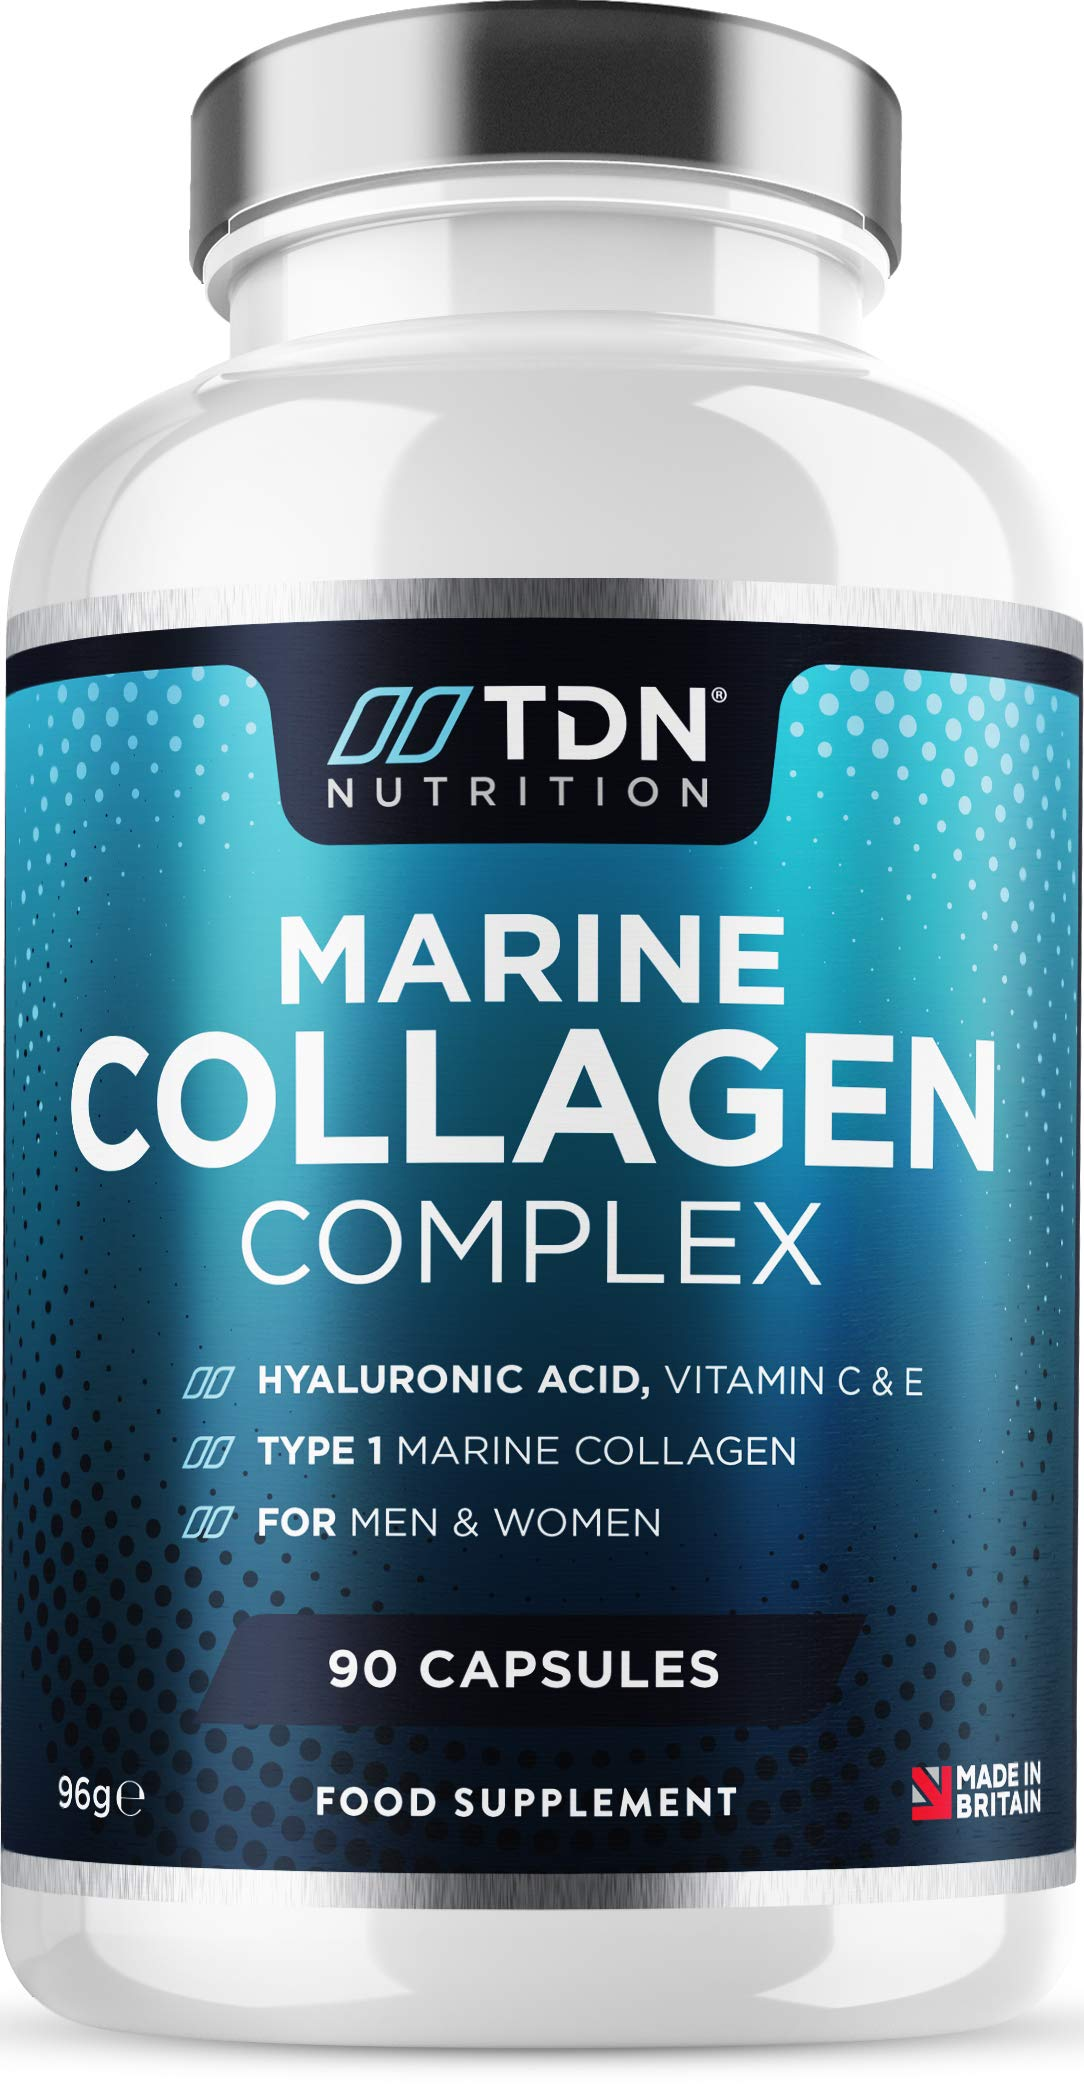 Marine Collagen 1700mg+ Supplement - 90 Capsules - Superior Type 1 Hydrolysed Peptan® Collagen Tablets - Enhanced with Hyaluronic Acid, Aloe Vera, Vitamin C, E, B6, B12, D3, Zinc & Selenium - UK Made